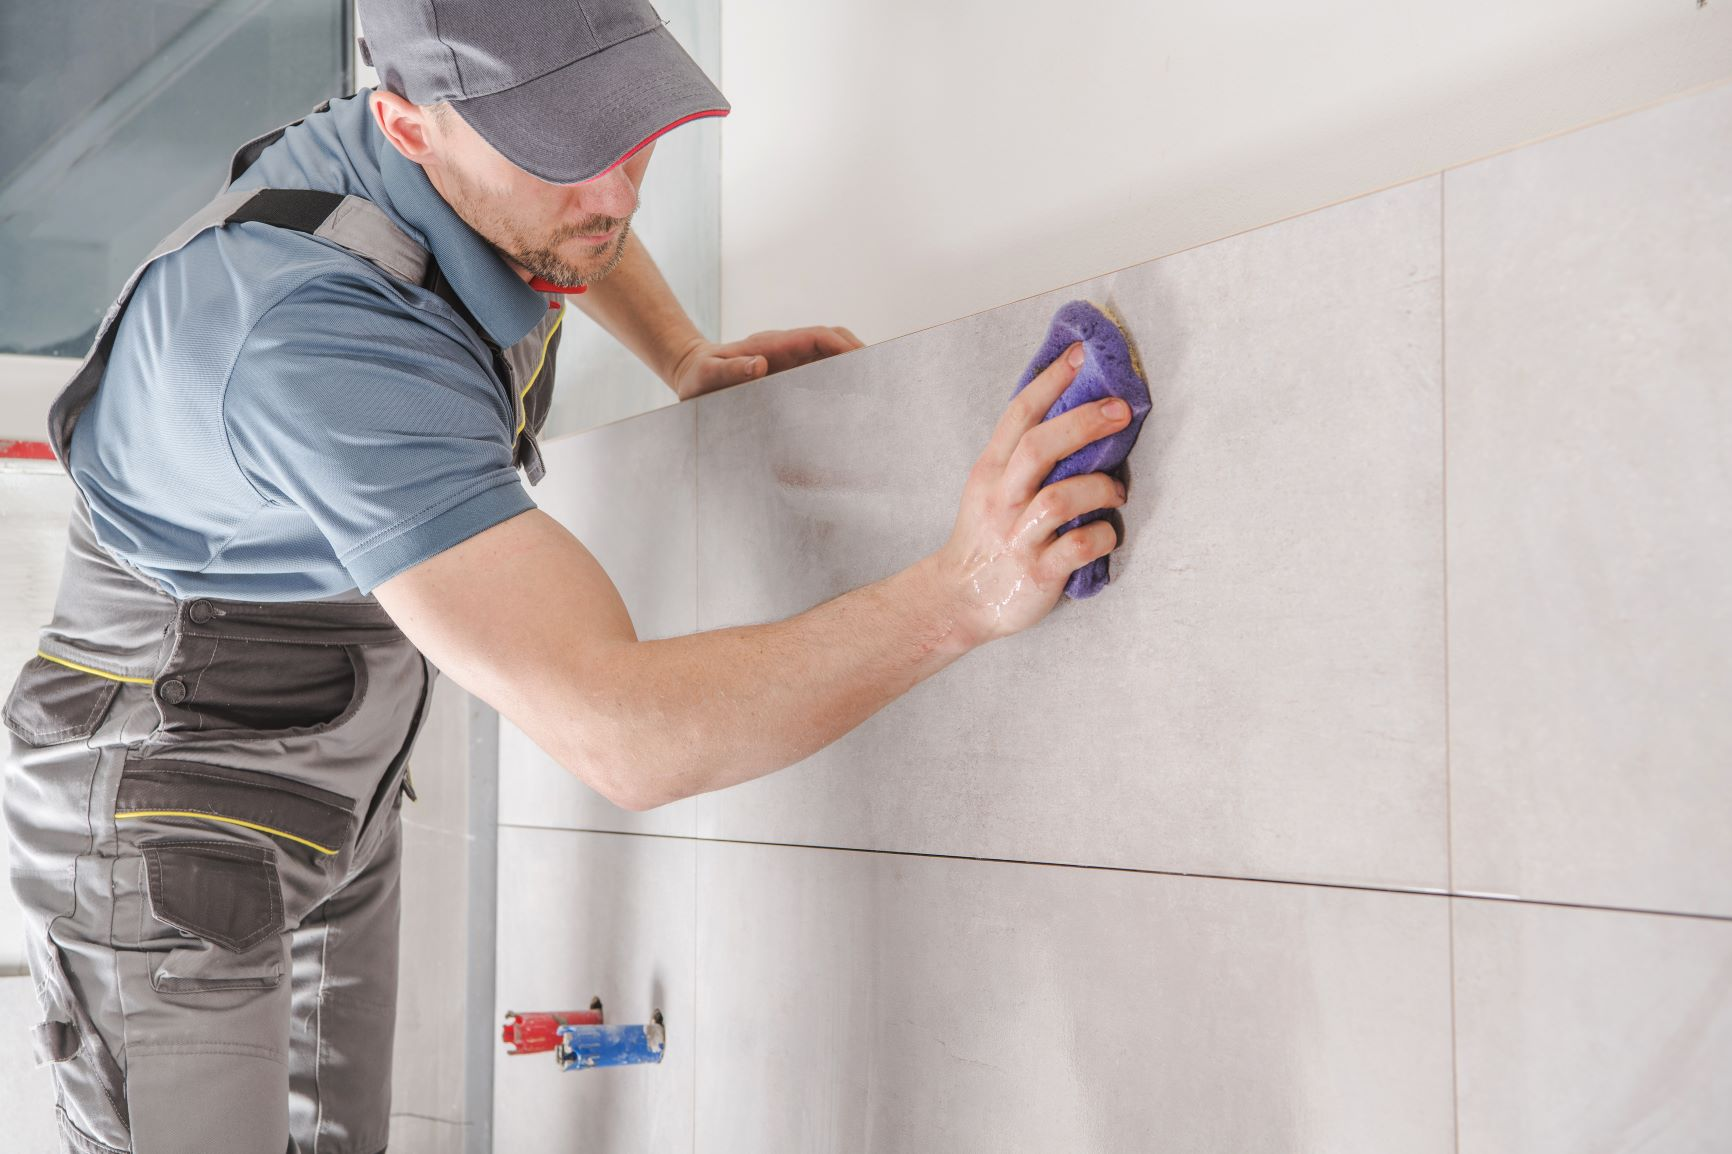 Tips for Selecting and Contracting a Home Remodeling General Contractor